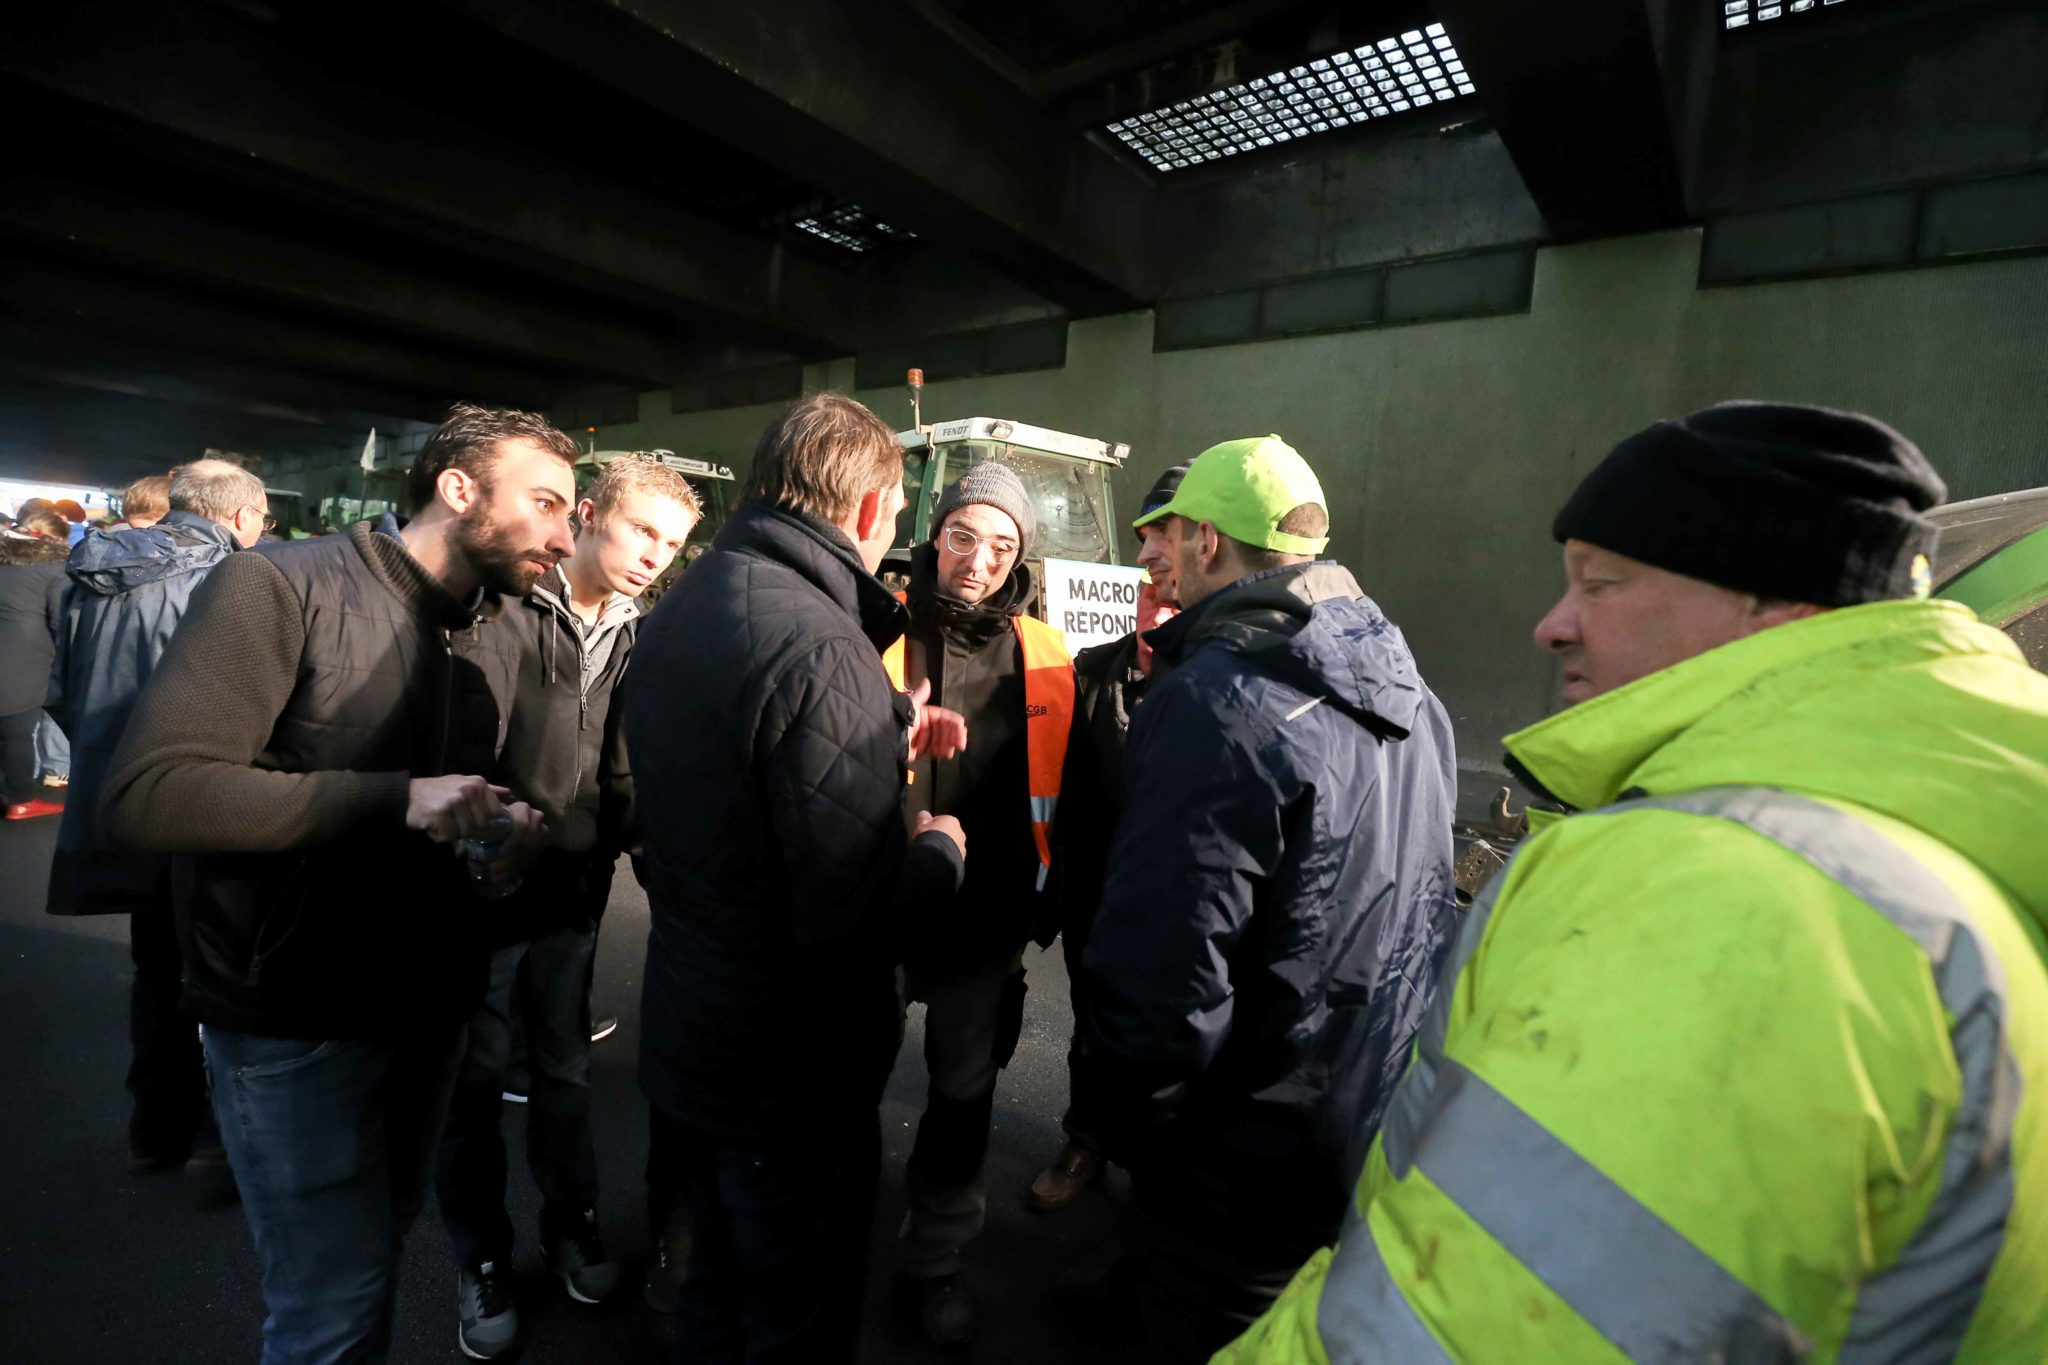 Les agriculteurs en discussion dans un tunnel. © Michel Stoupak. Mer 27.11.2019, 15:39:27.